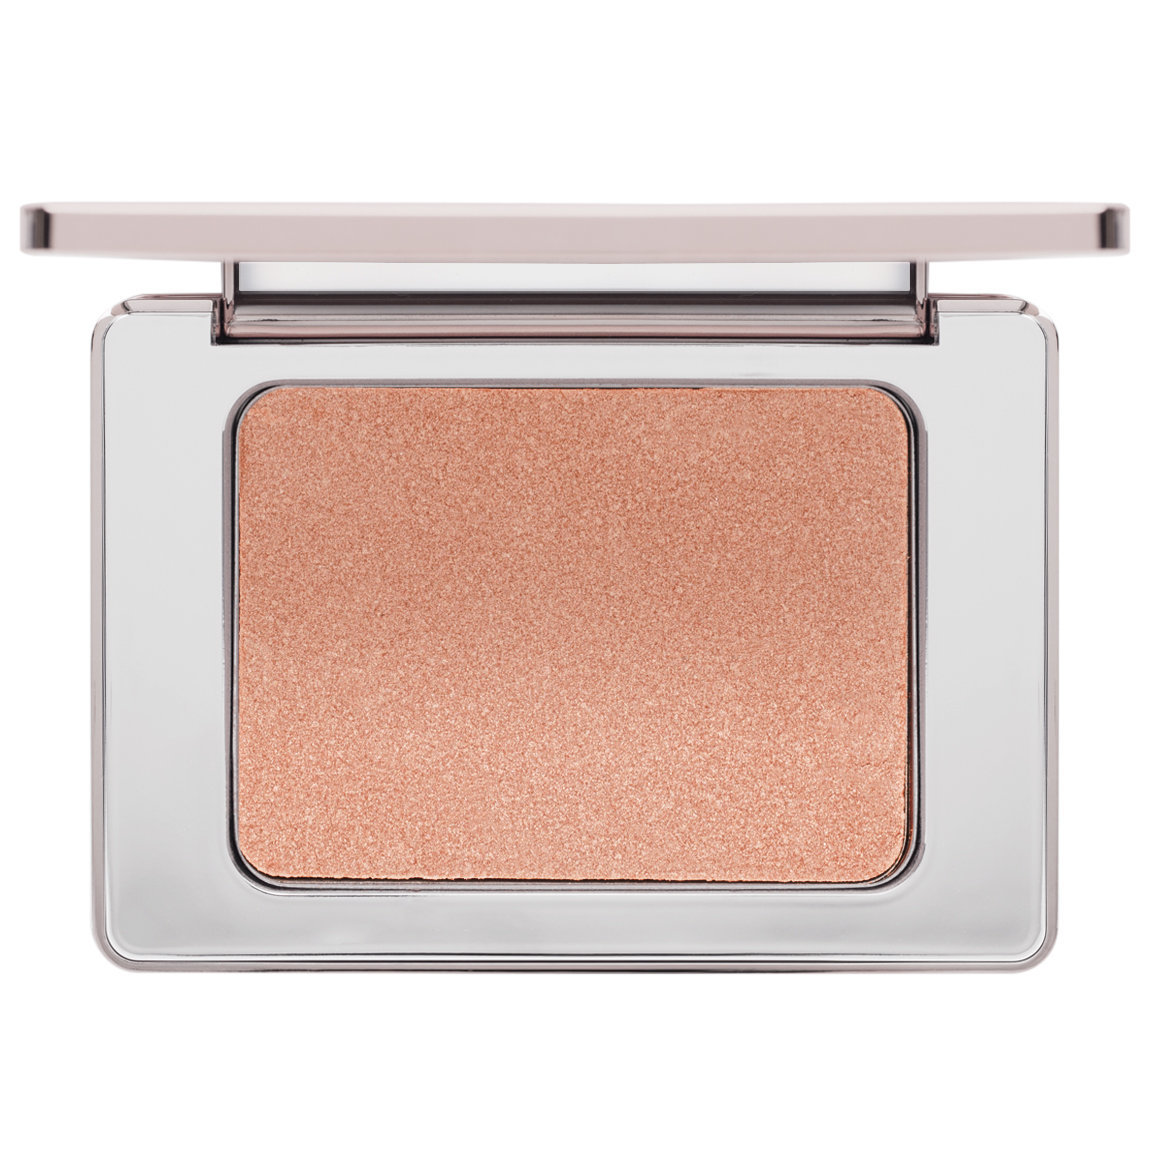 Natasha Denona Super Glow 02 Light-Medium product smear.